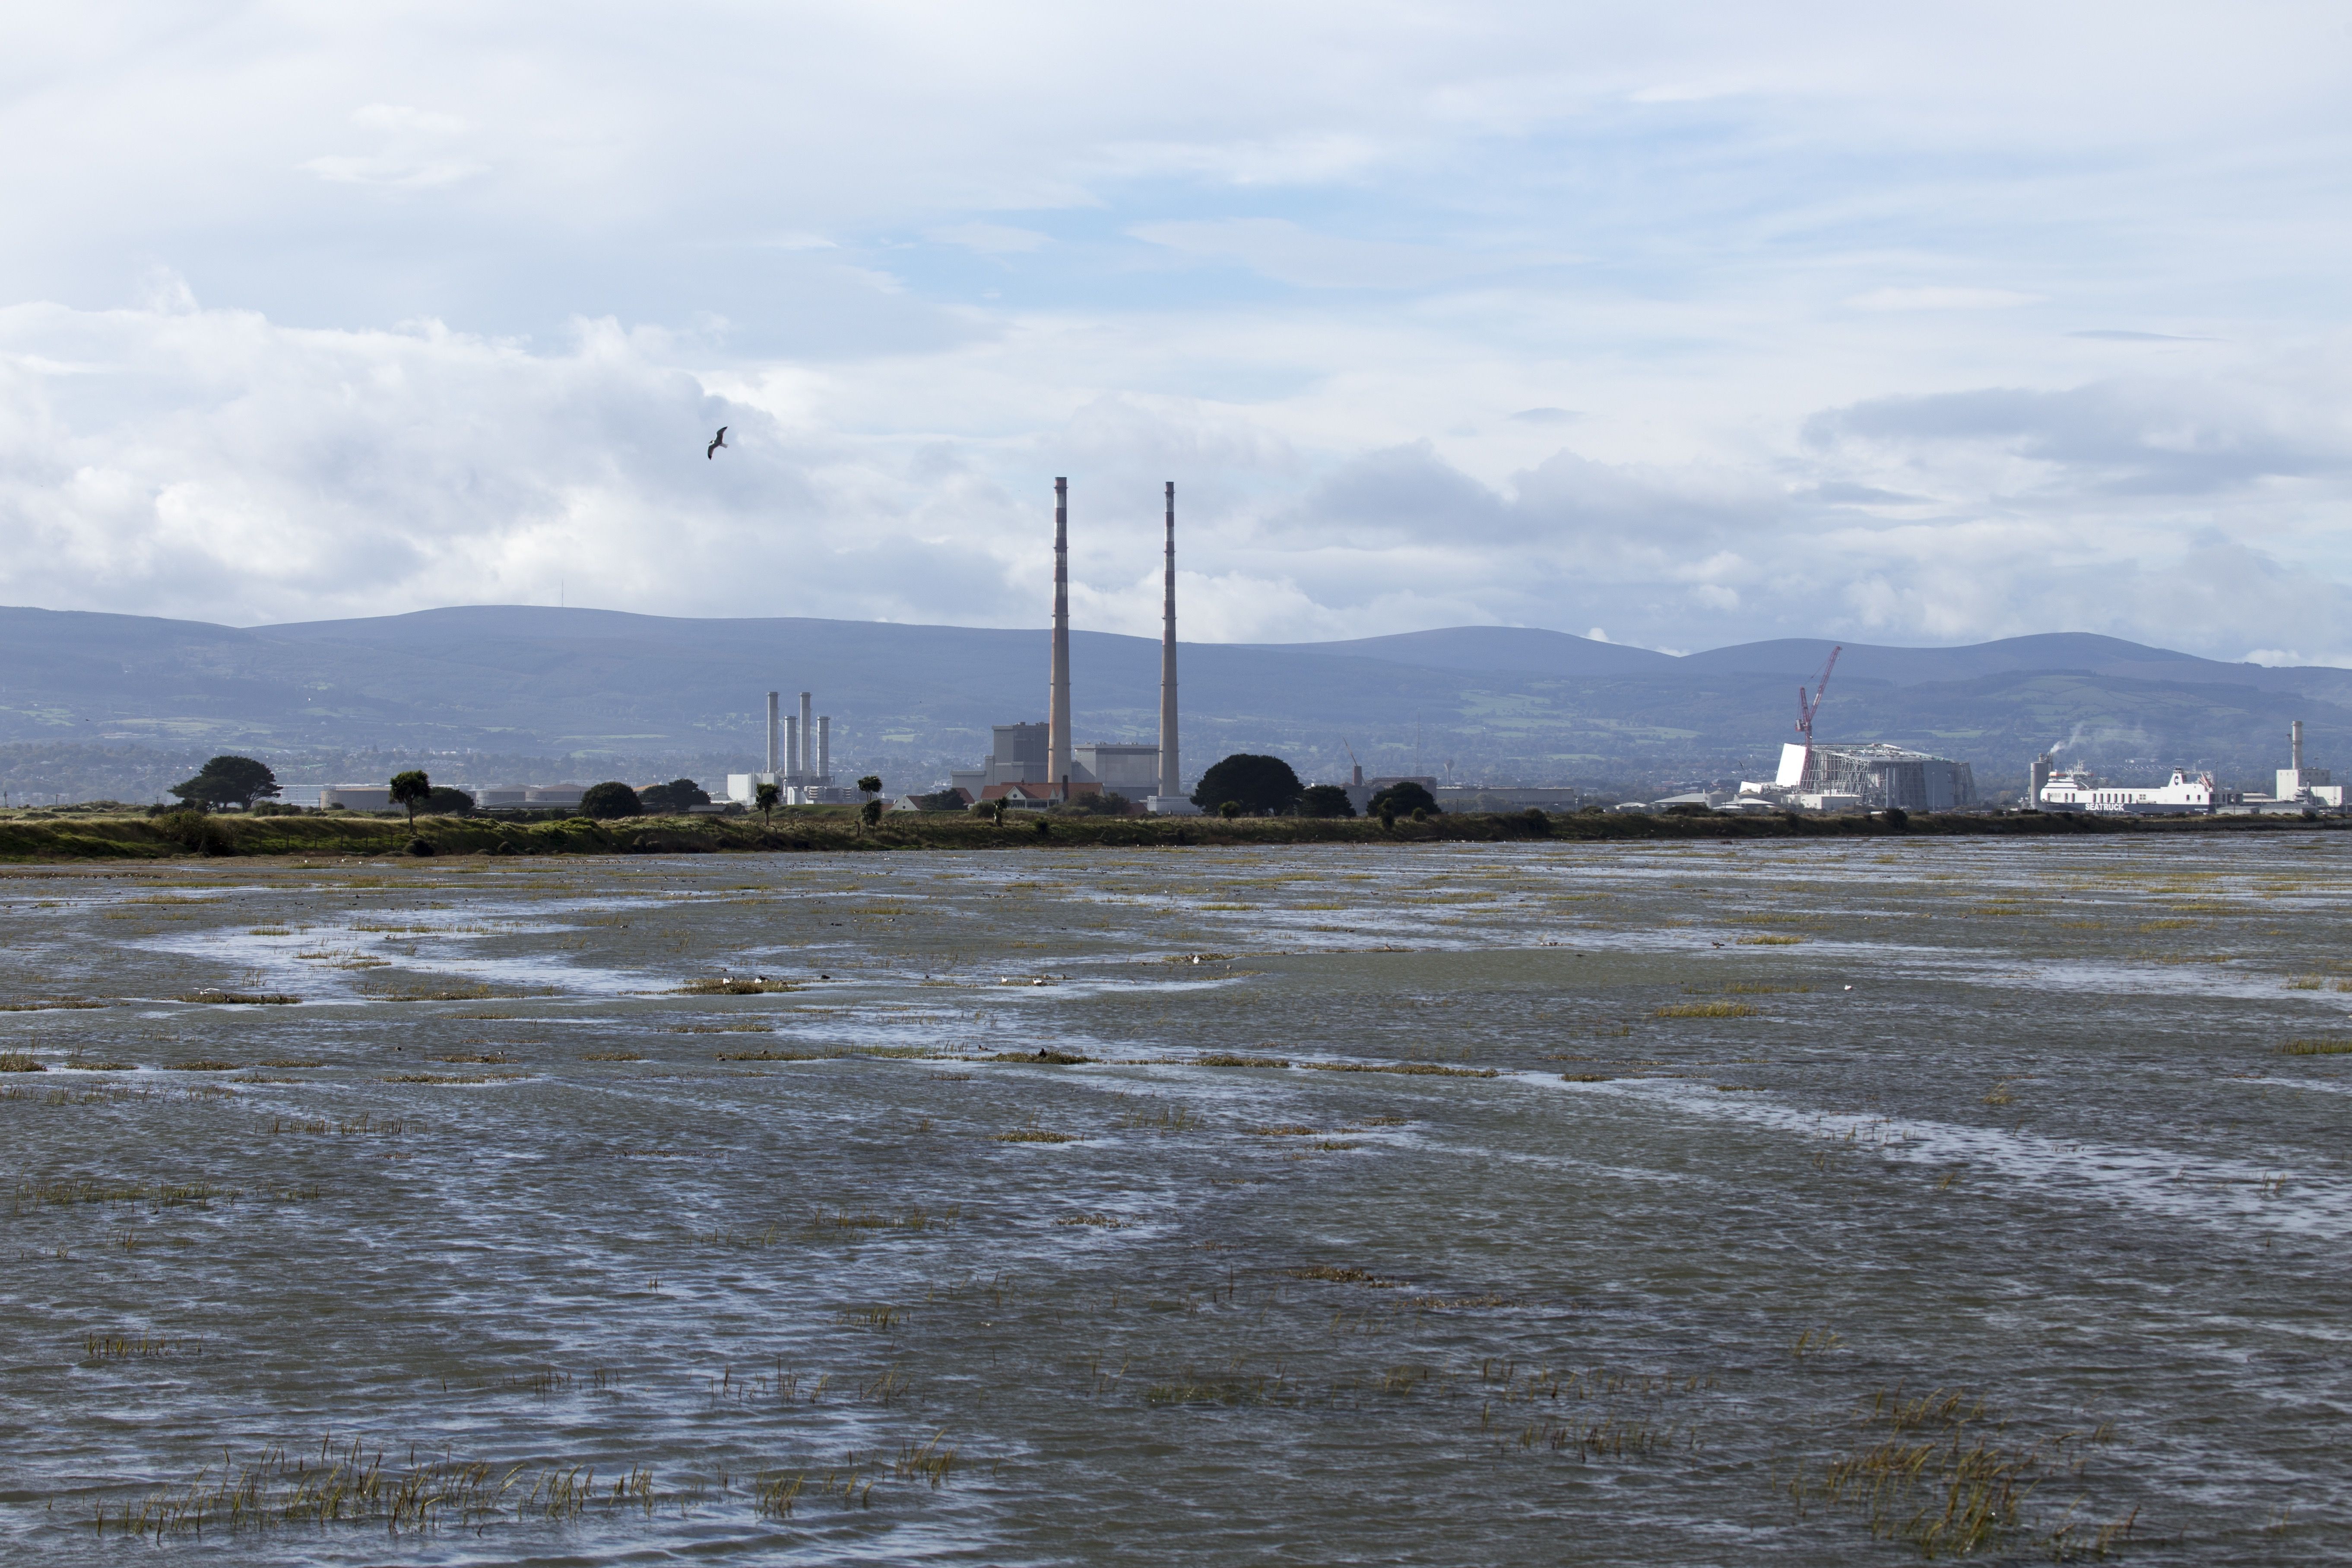 View of Poolbeg Towers from Clontarf